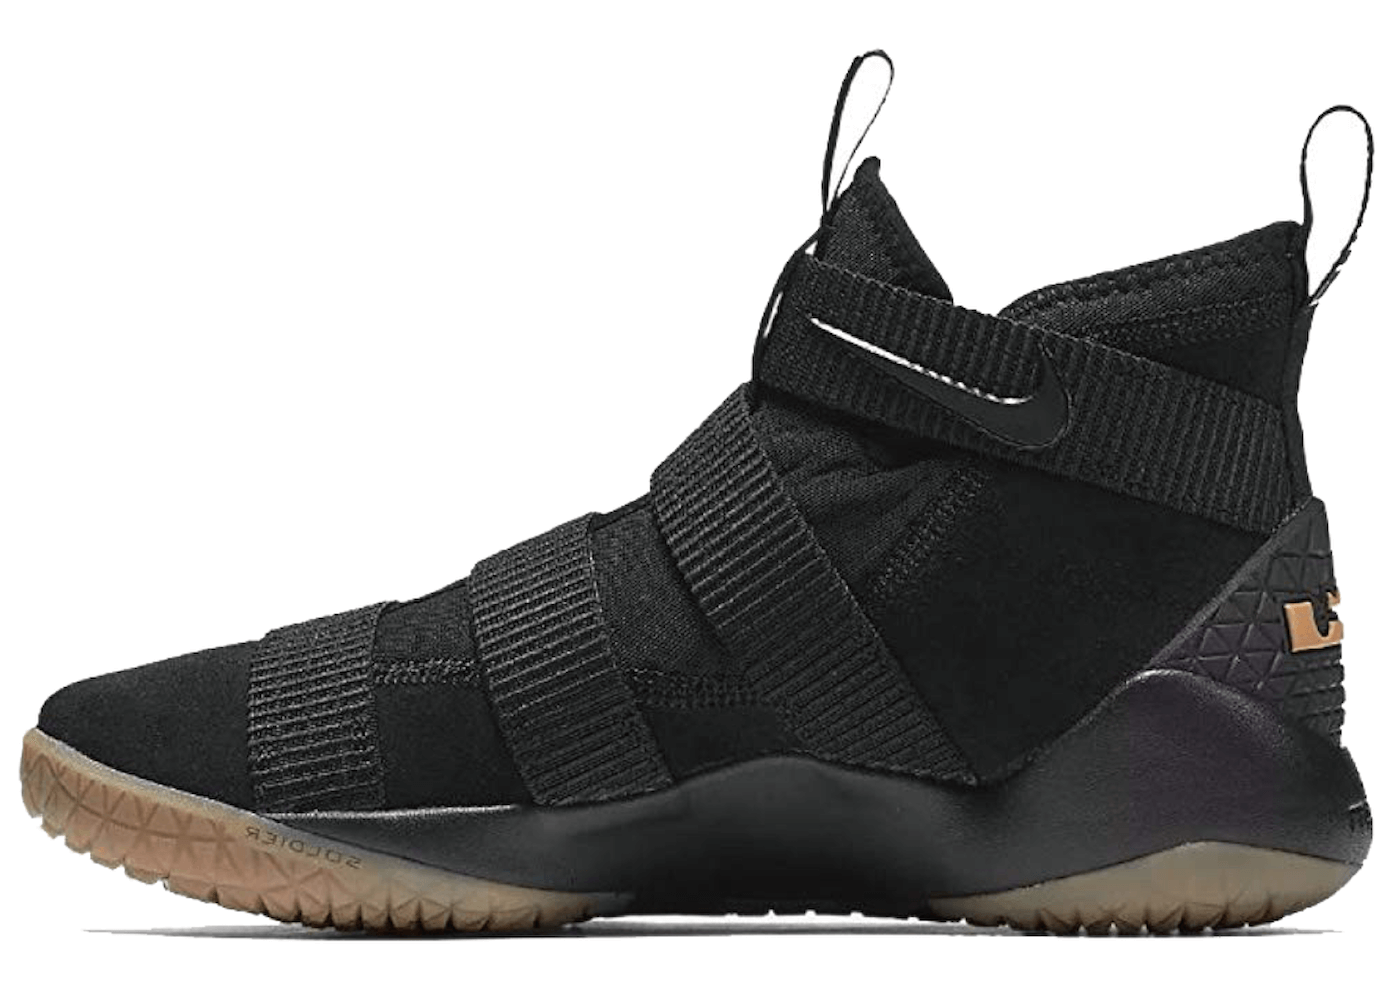 LeBron Zoom Soldier 11 Black Gumの写真